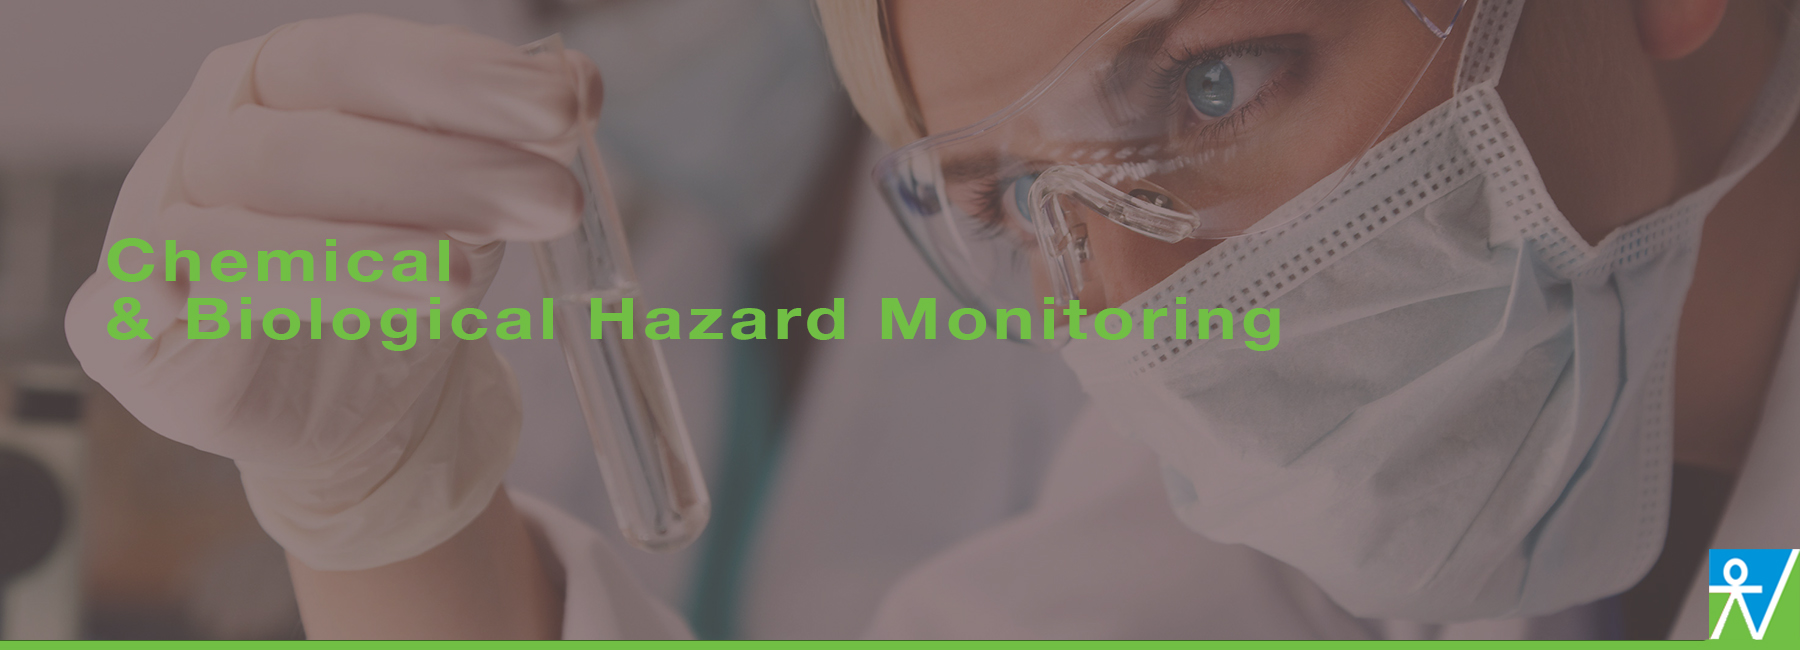 Workplace Chemical & Biological Hazard Monitoring | Auckland, New Zealand